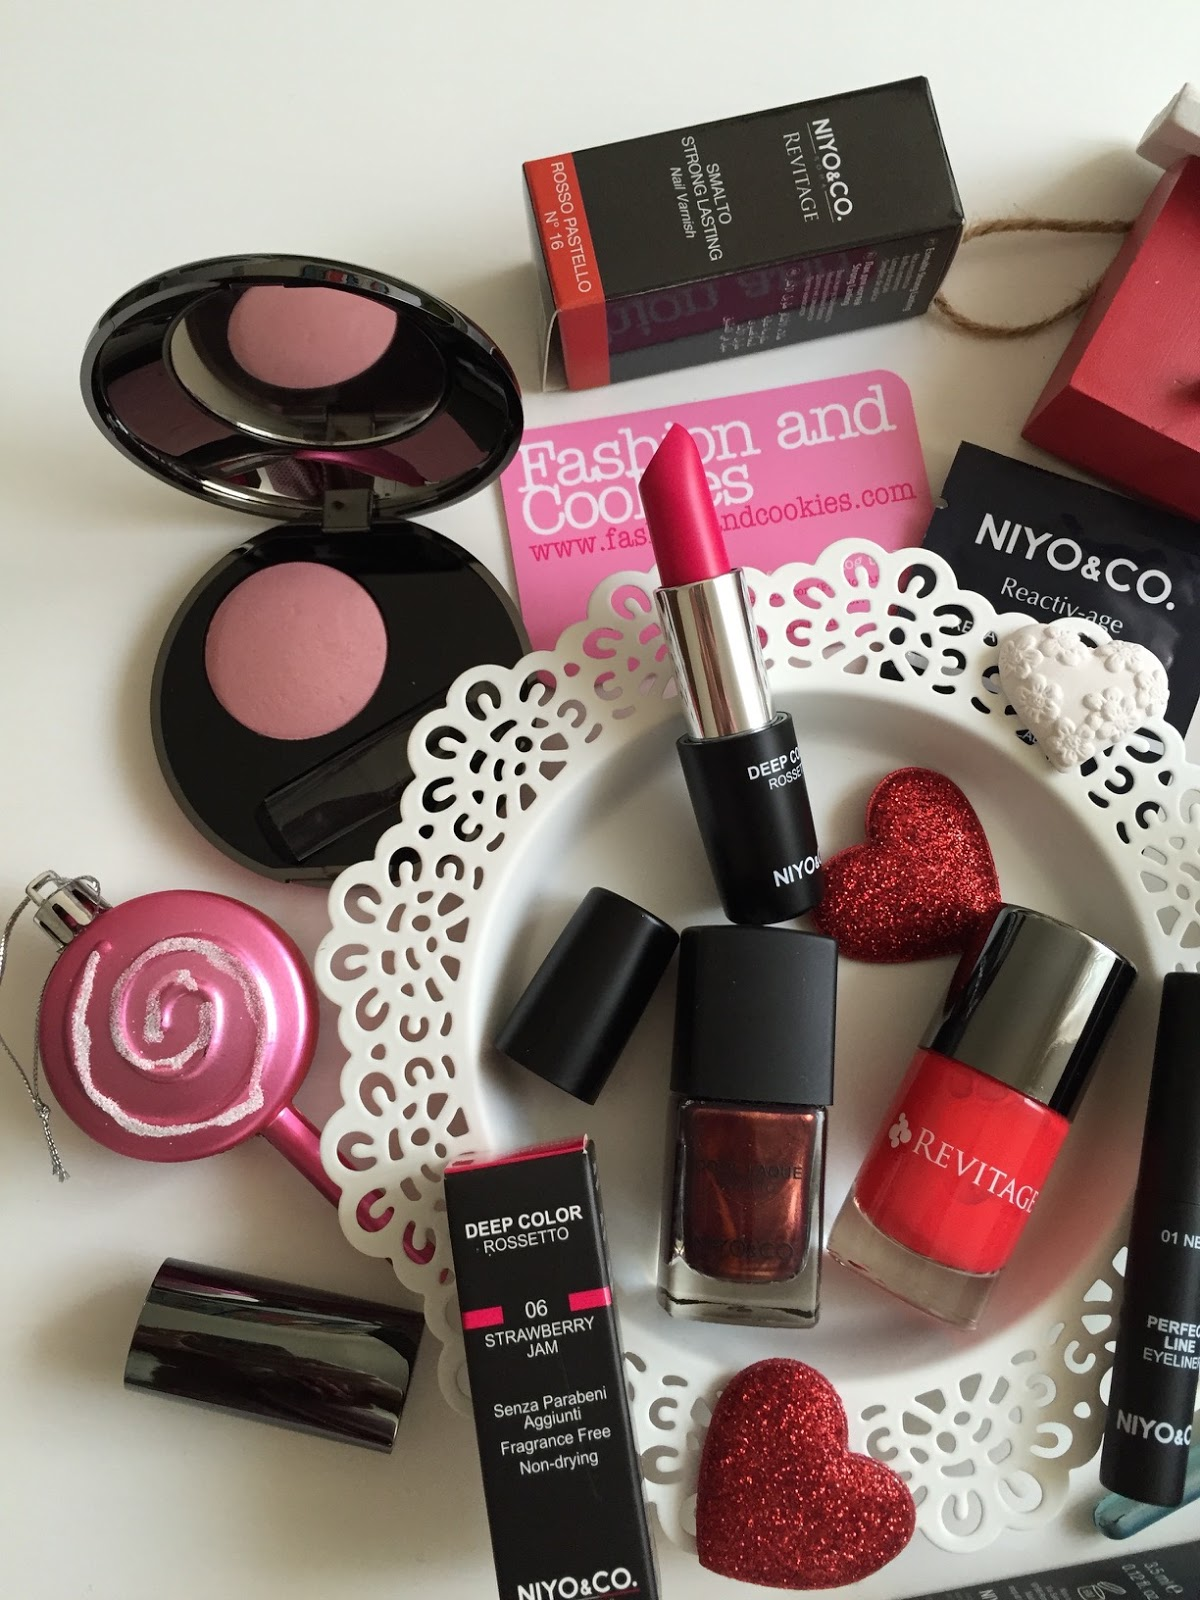 Niyo&Co. italian make-up: haul su Fashion and Cookies beauty blog, beauty blogger